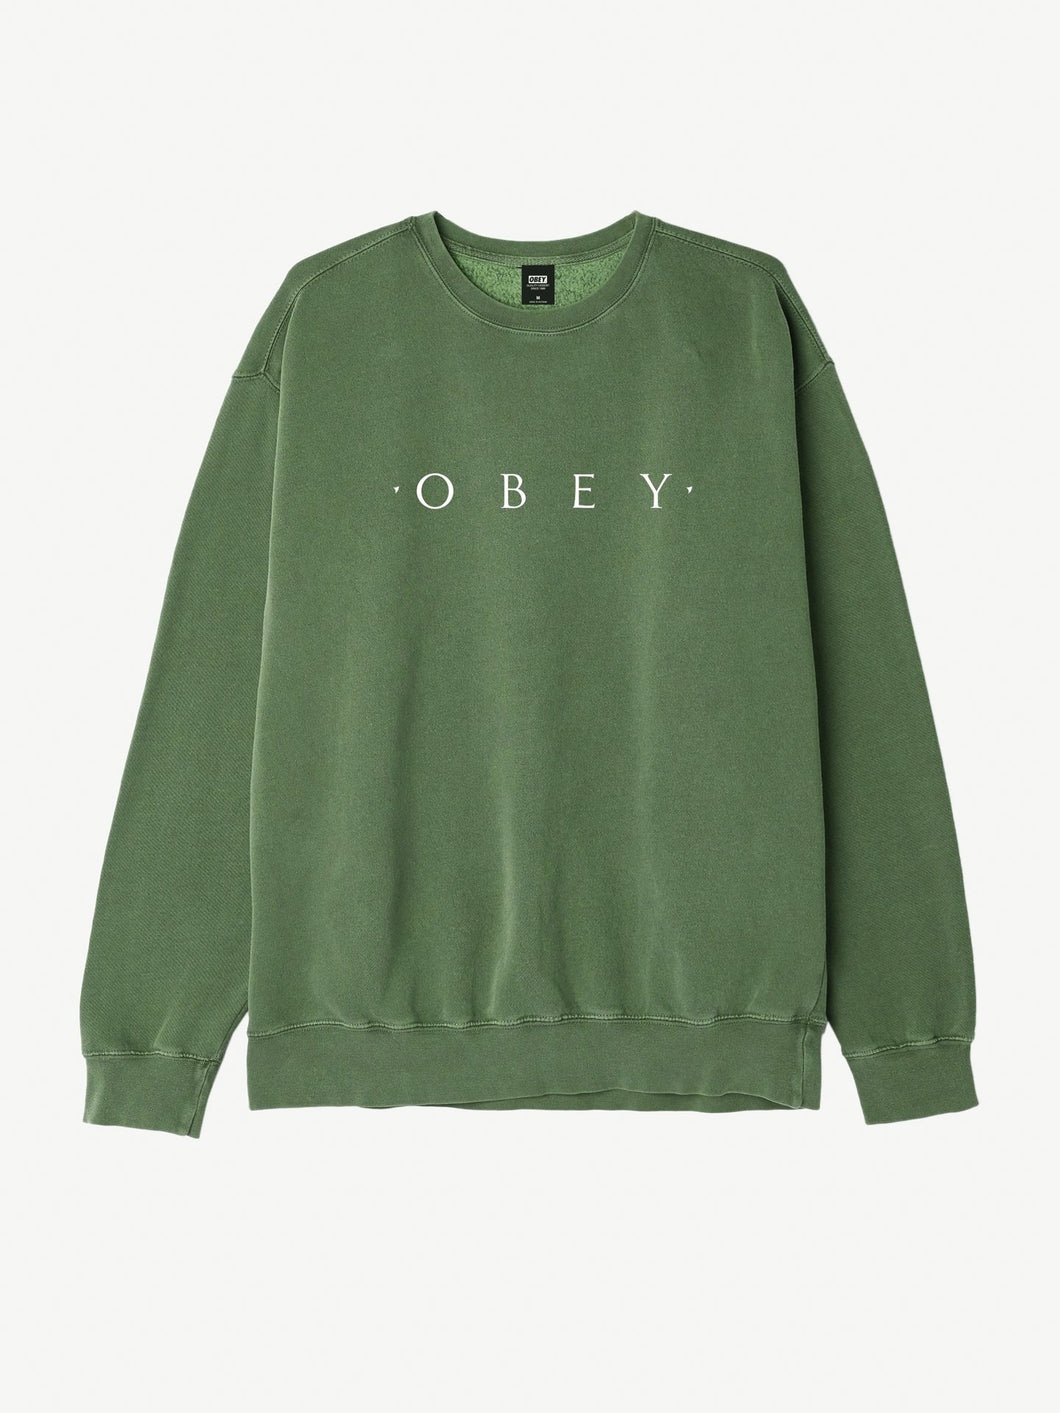 OBEY NOVEL OBEY BASIC FLEECE CREW PIGMENT // DUSTY FOREST-The Collateral